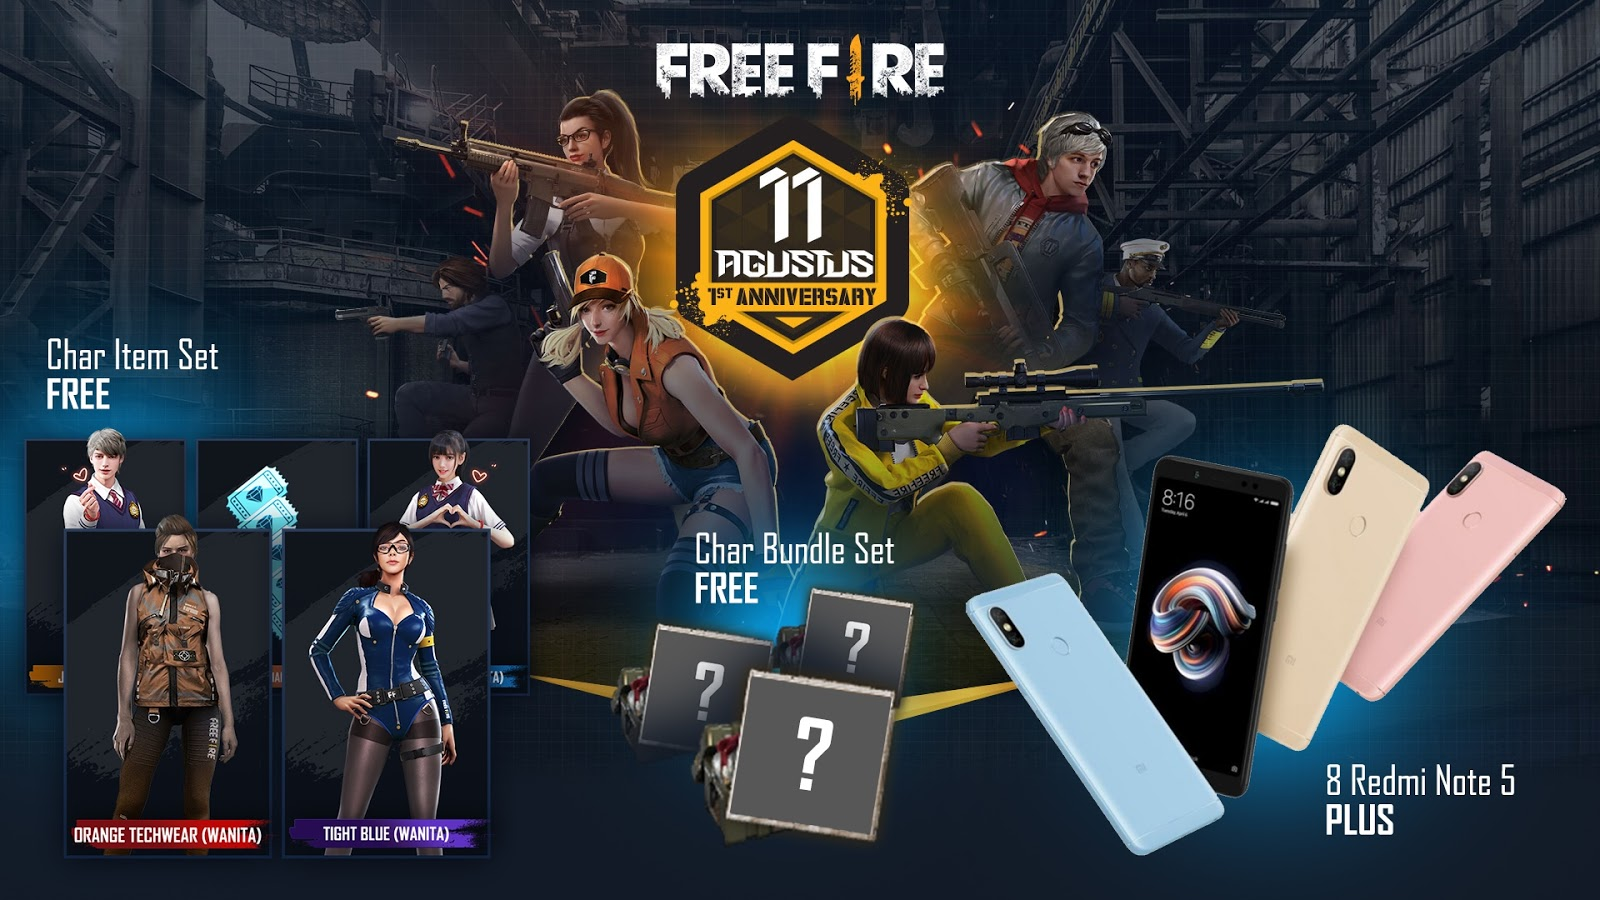 Freefire.Toall.Pro Free Fire Diamond Hack Game | Gdop.Live/Ff -